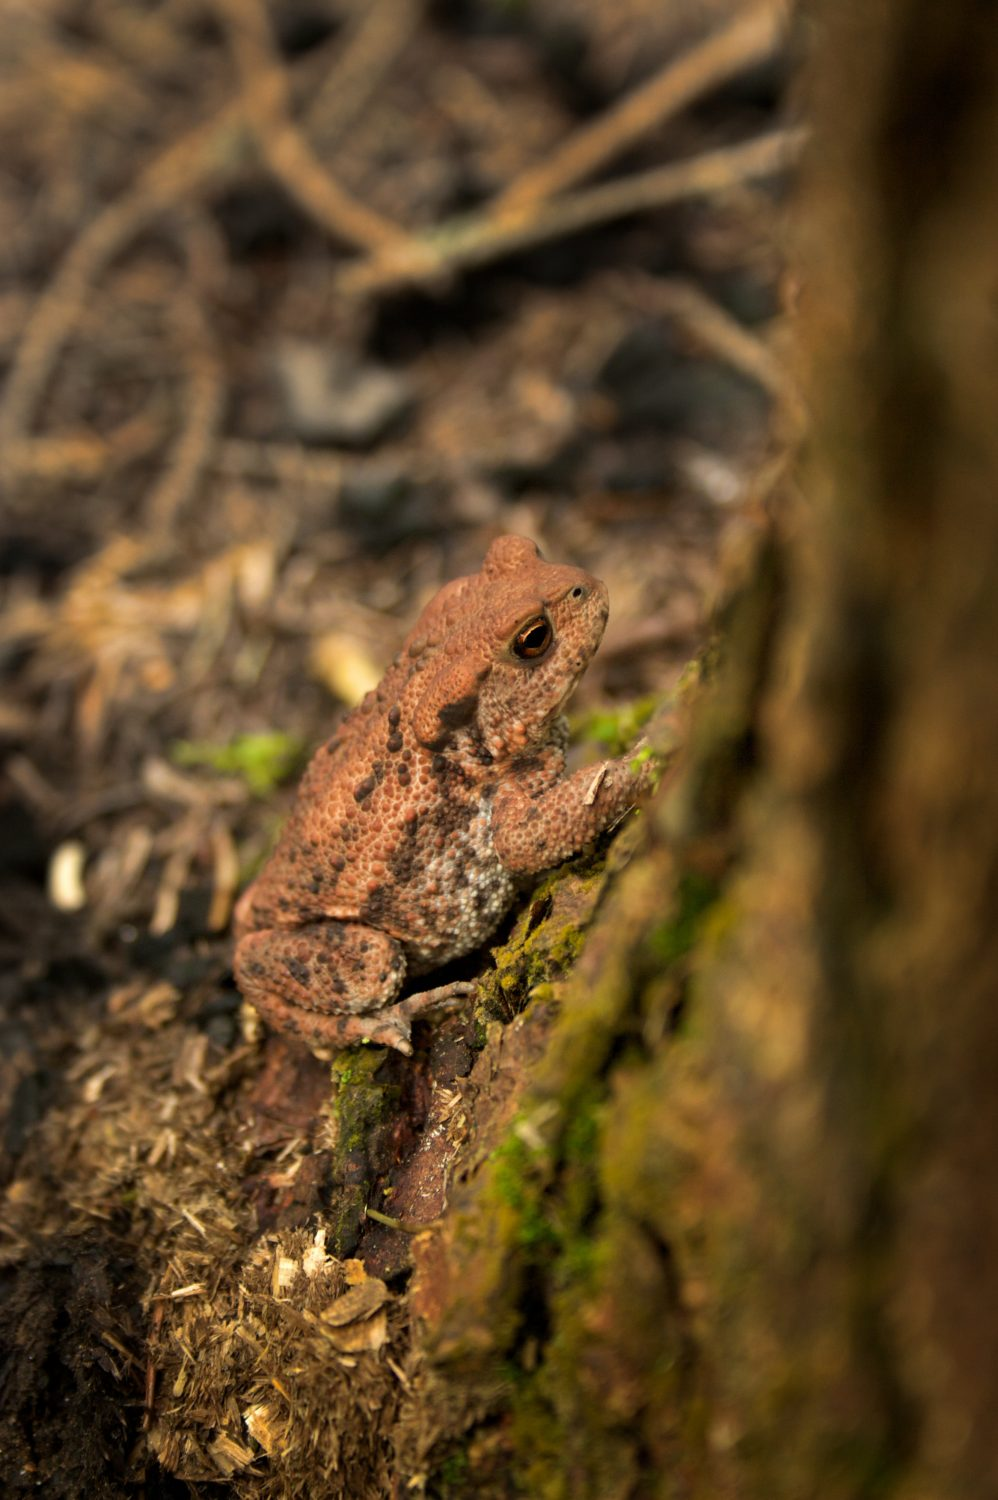 Leave a log pile in the corner of your garden to attract wildlife